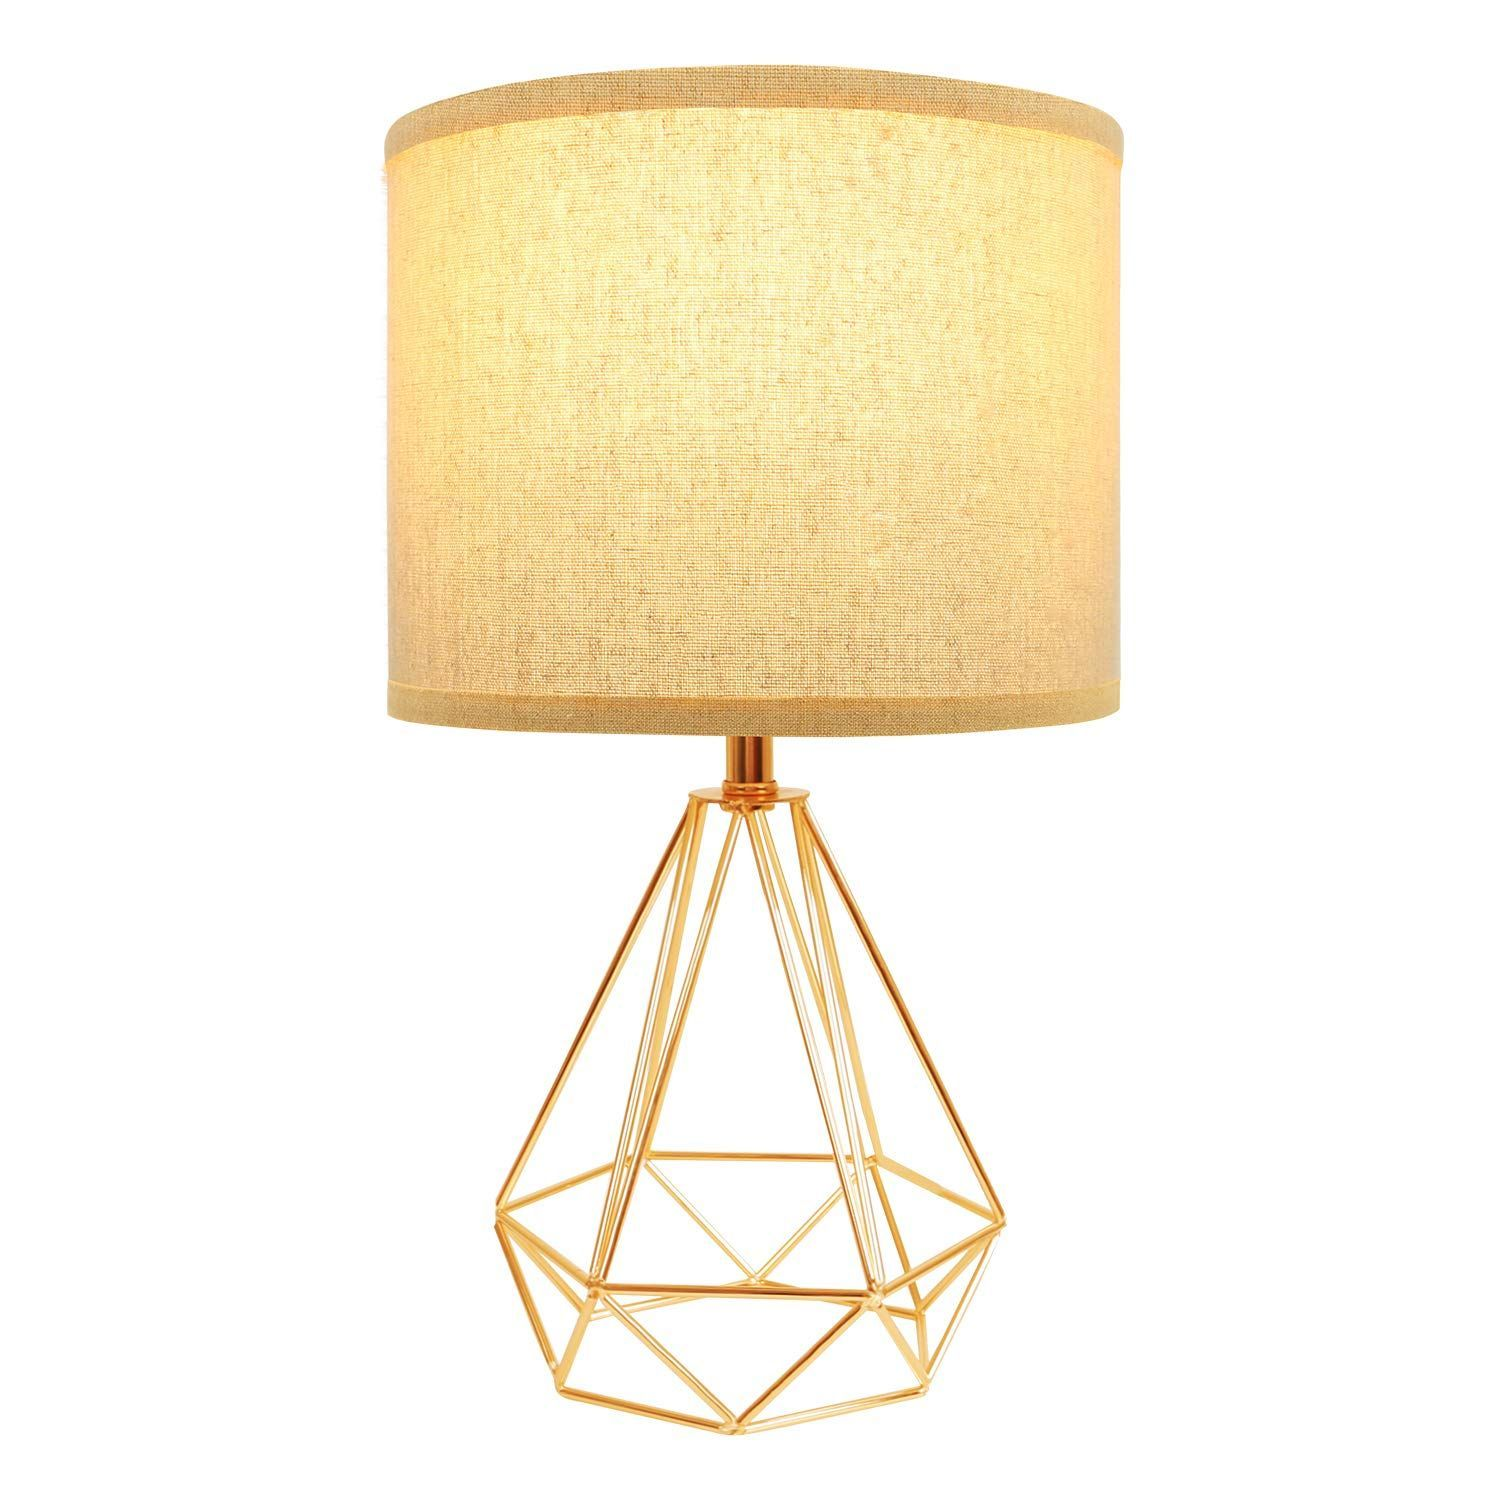 Hong In Modern Gold Table Lamps Geometric Hollowed Out Base 15 2 Bedside Base Bedside Geometr In 2020 Modern Gold Table Lamps Gold Table Lamp Modern Table Lamp